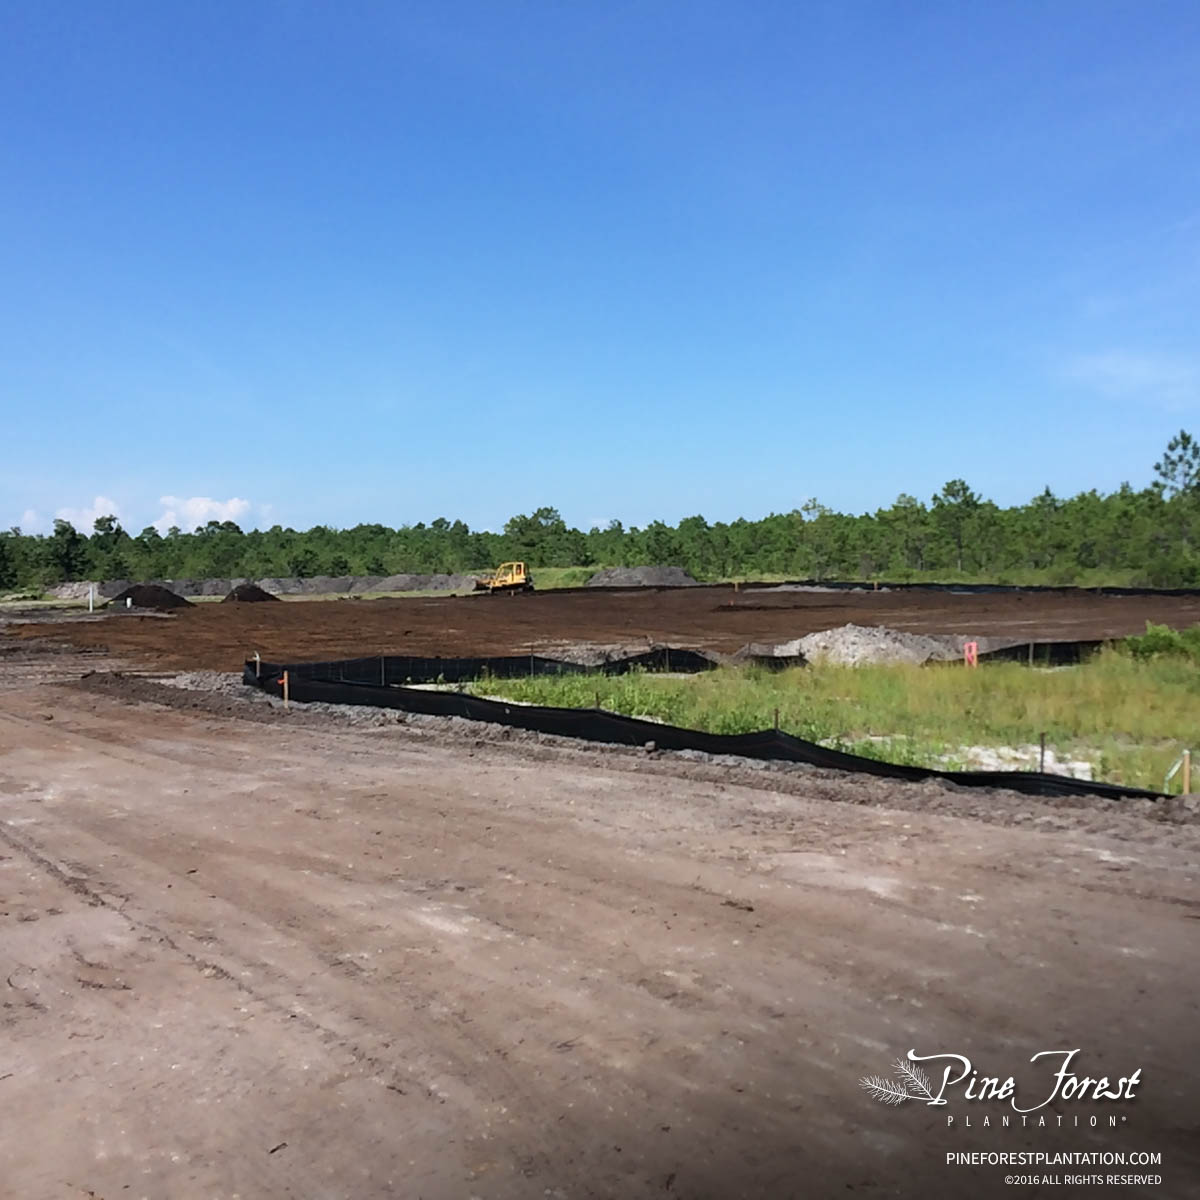 Preparing Novant Health construction site ahead of building in Pine Forest of Oak Island, NC.